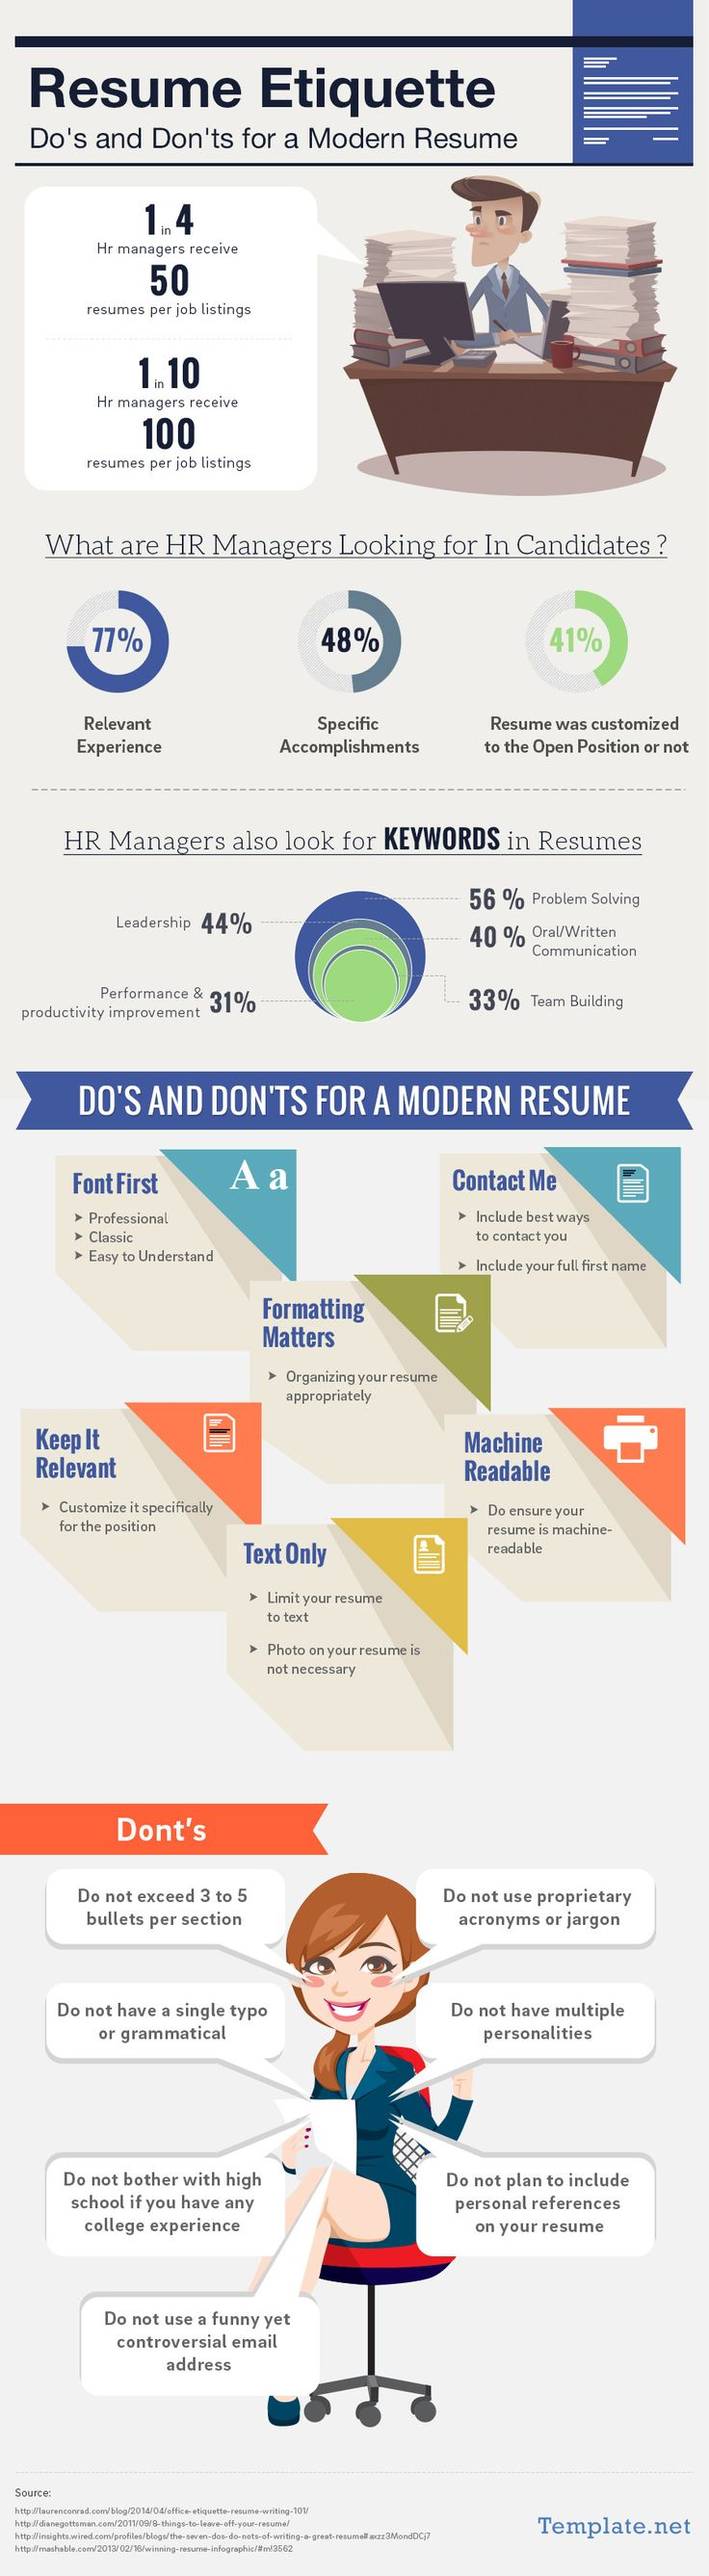 Resume Etiquette Dou0027s And Donu0027ts For A Modern Resume #infographic